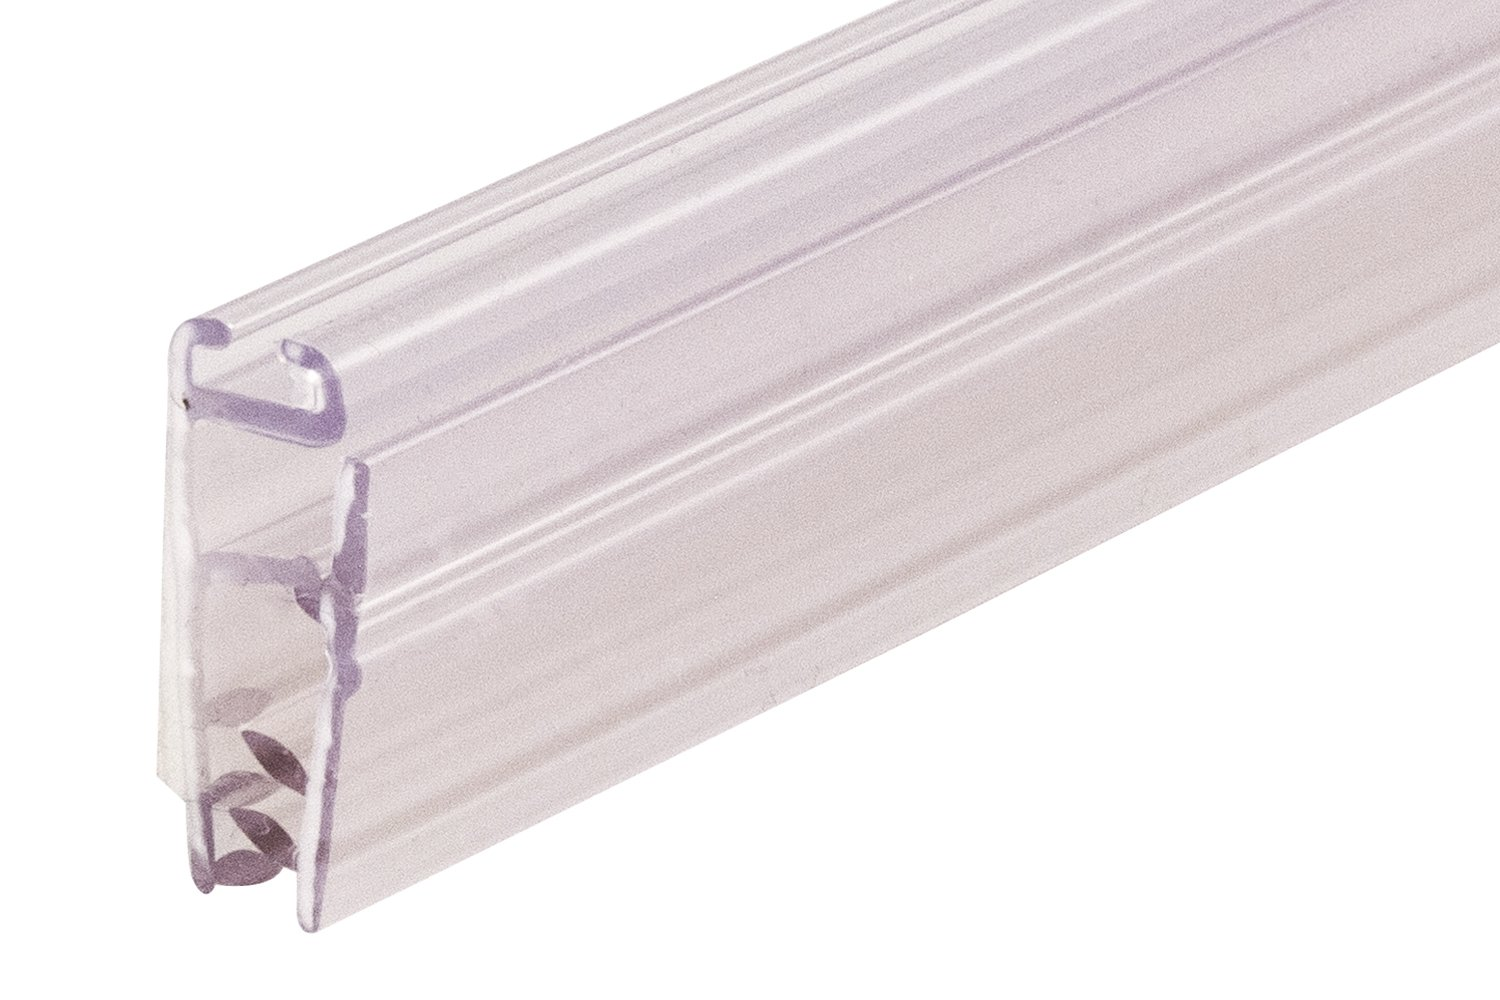 Pack of 120 Clear 24 Length FFR Merchandising 6118557503 Mercury Fast Load Banner//Sign Holder with Adhesive 24 Length